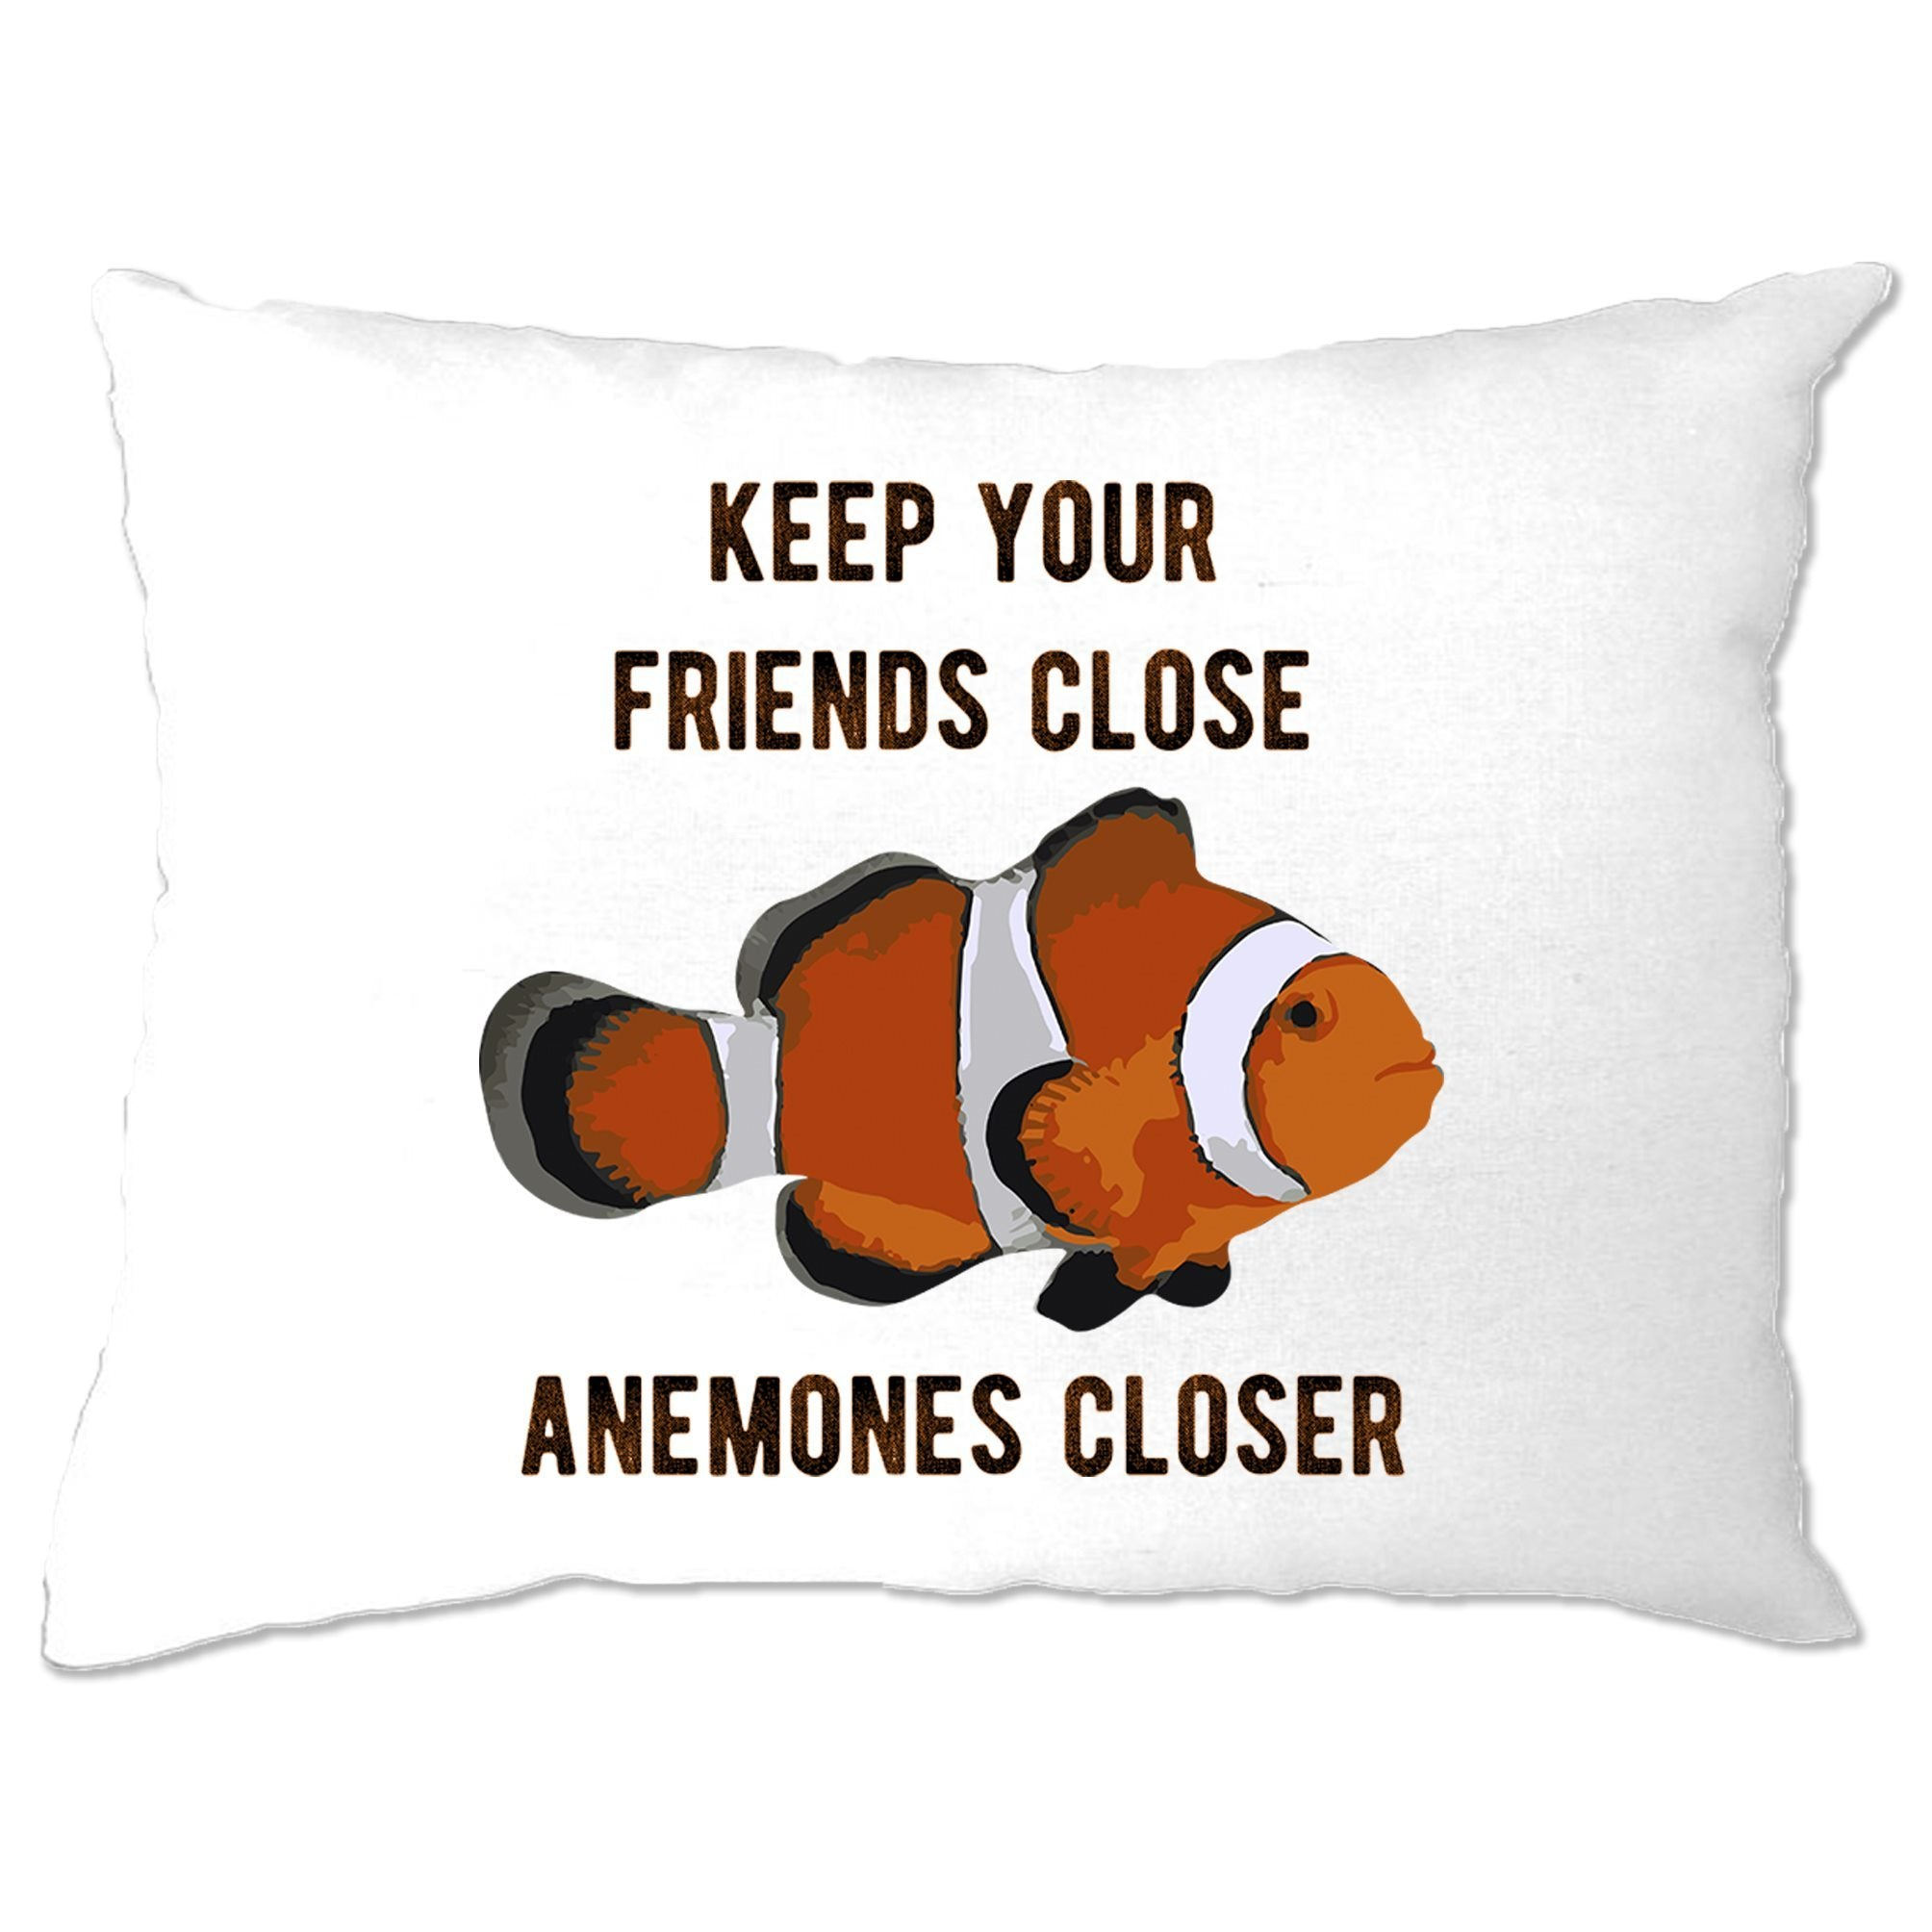 Joke Clownfish Pillow Case Keep Your Friends Close